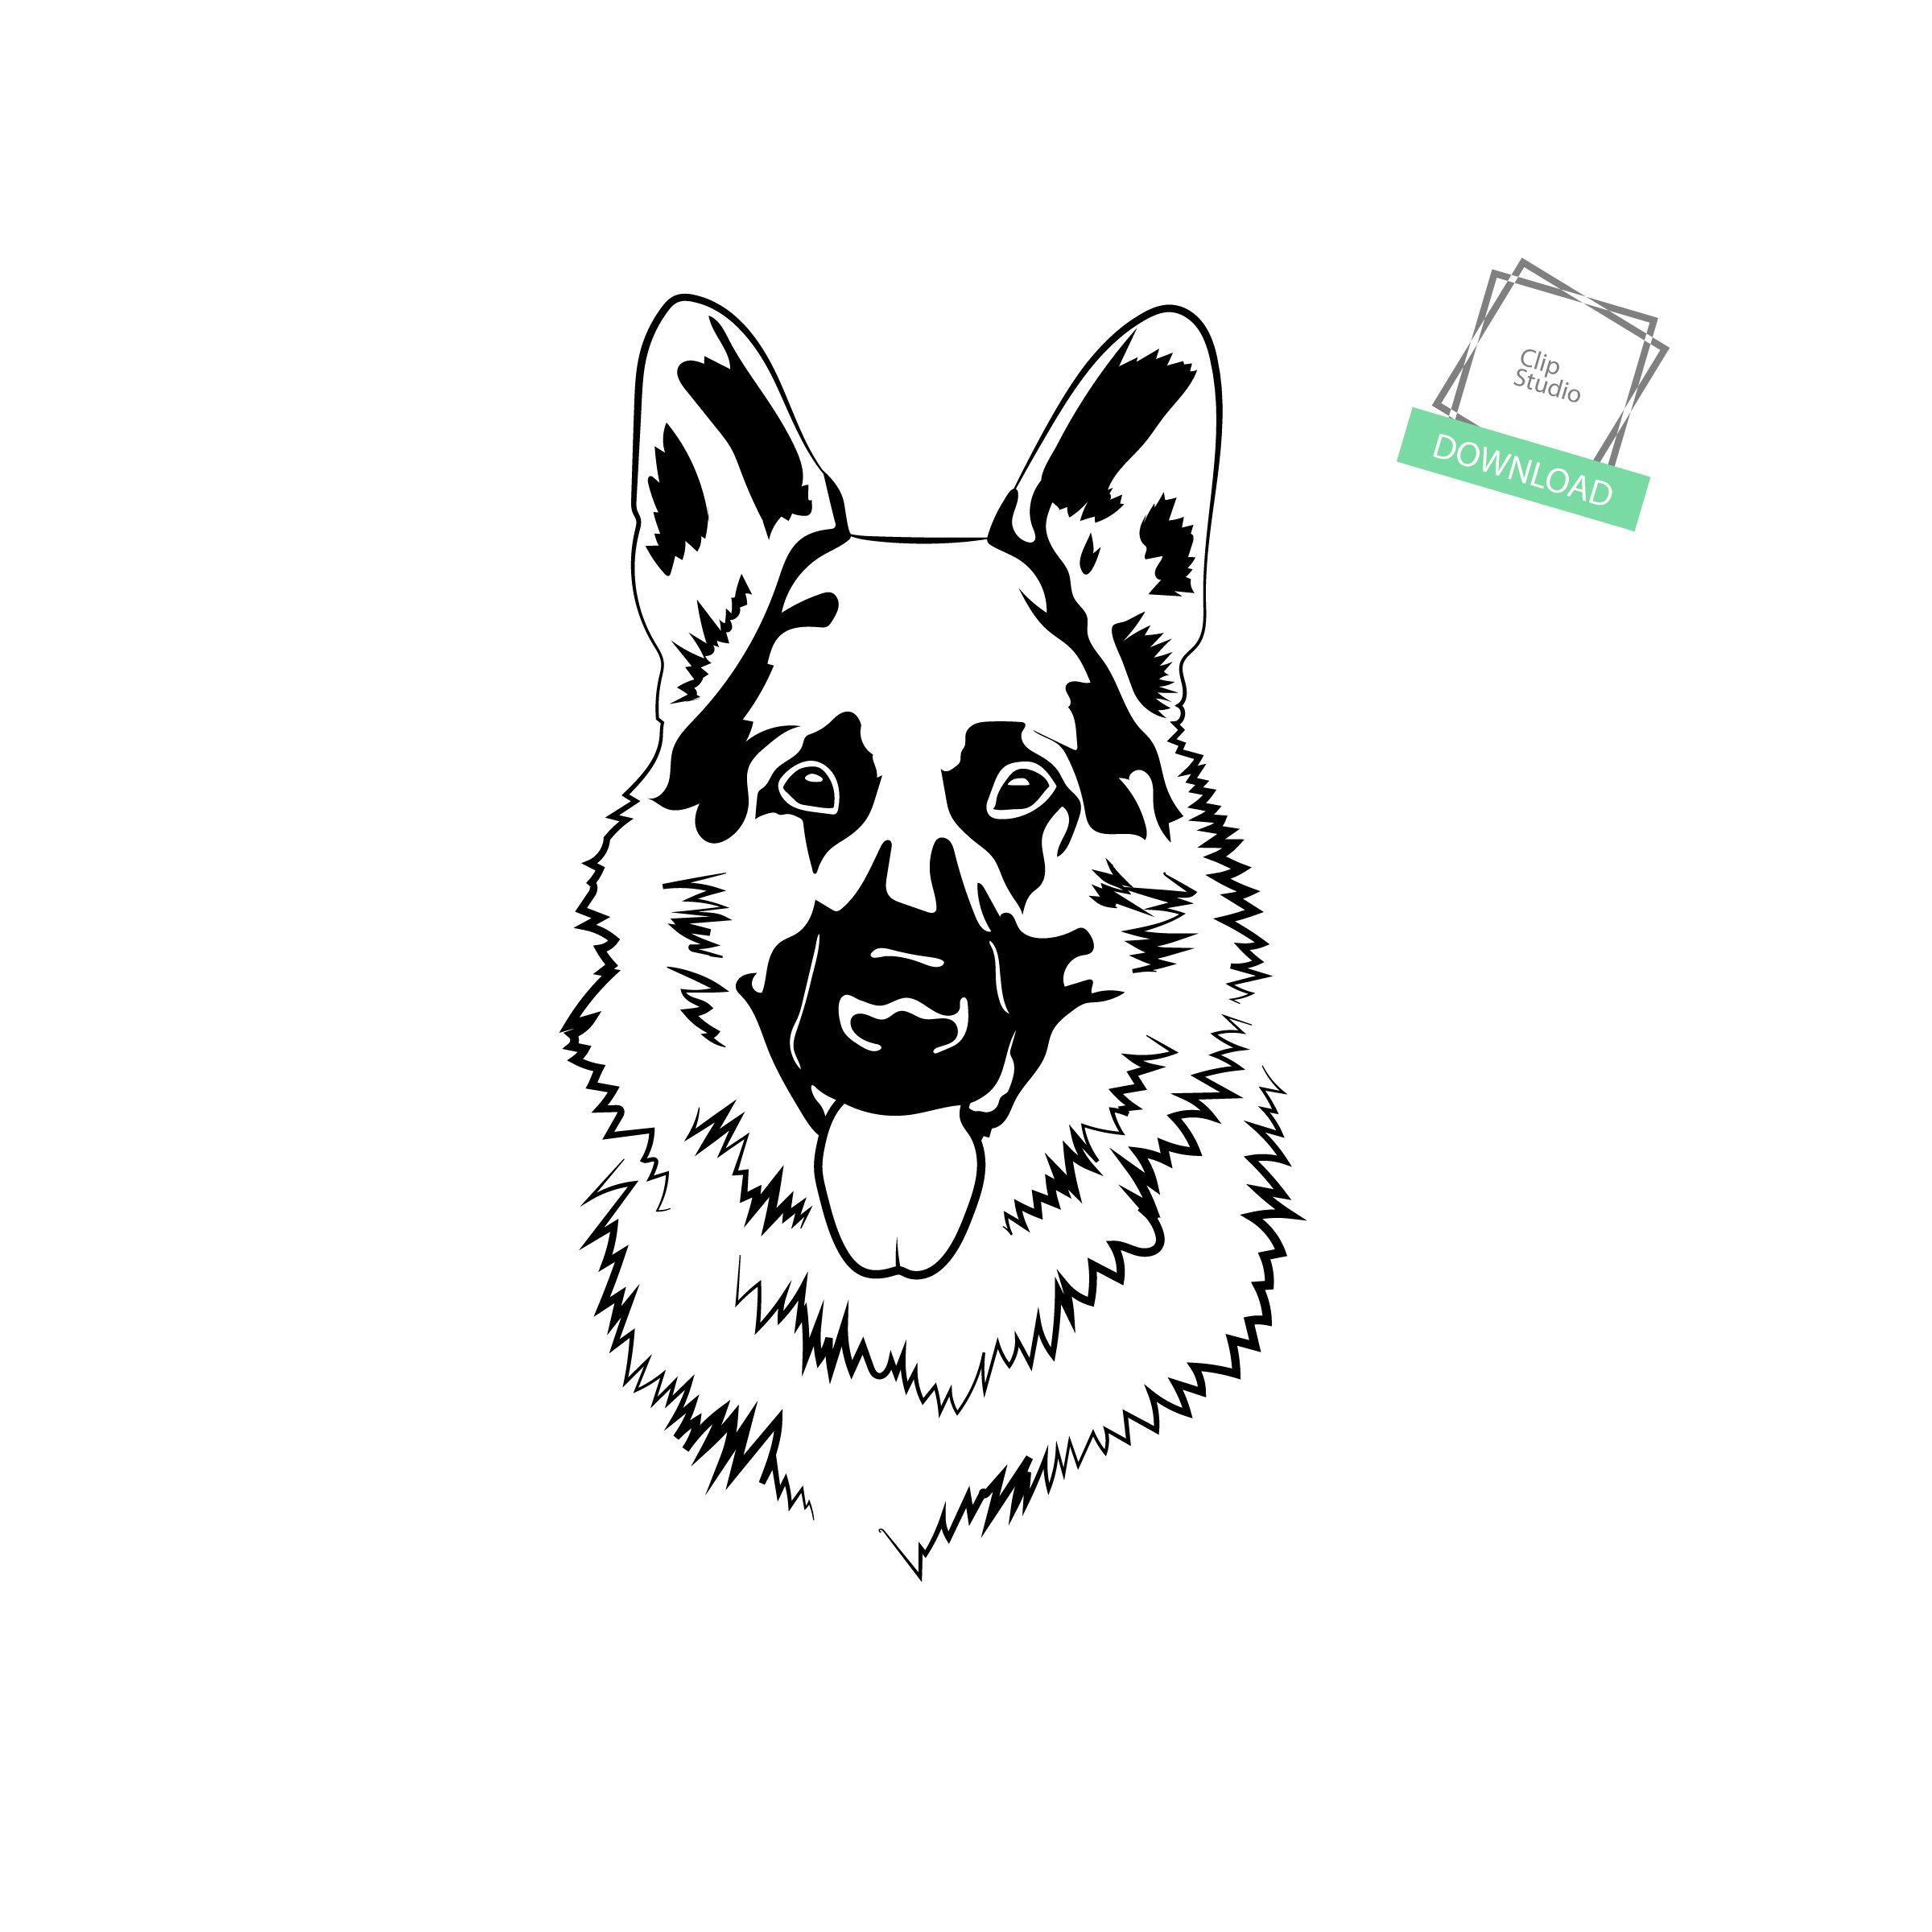 German Shepherd 1 Sheepdog Friend Police Dog Animal Cute Puppy Breed Guard Front Svg Eps Png Clipart Vector Tatt Sheepdog German Shepherd Cute Puppy Breeds